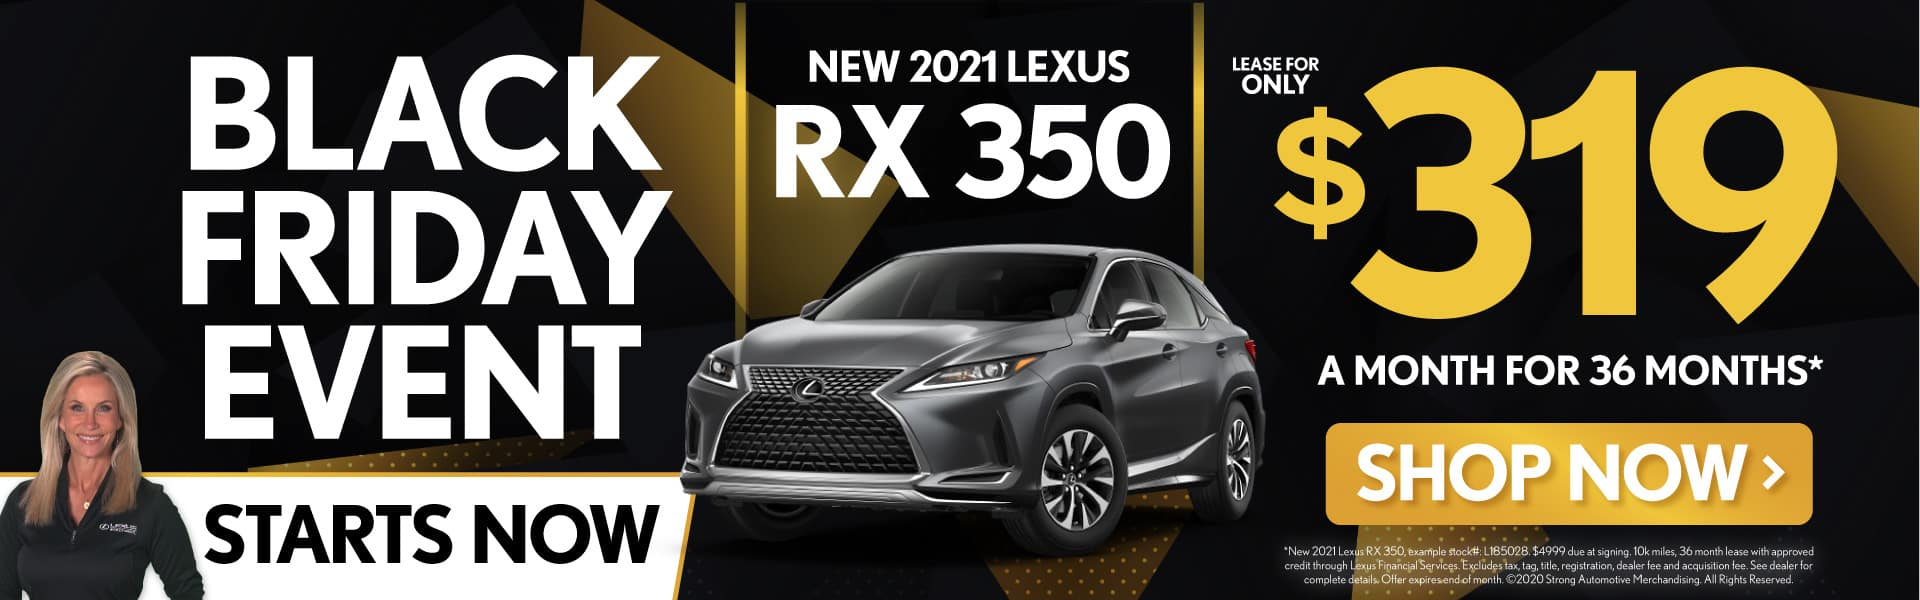 New 2021 Lexus RX 350 only $319/mo - SHOP NOW